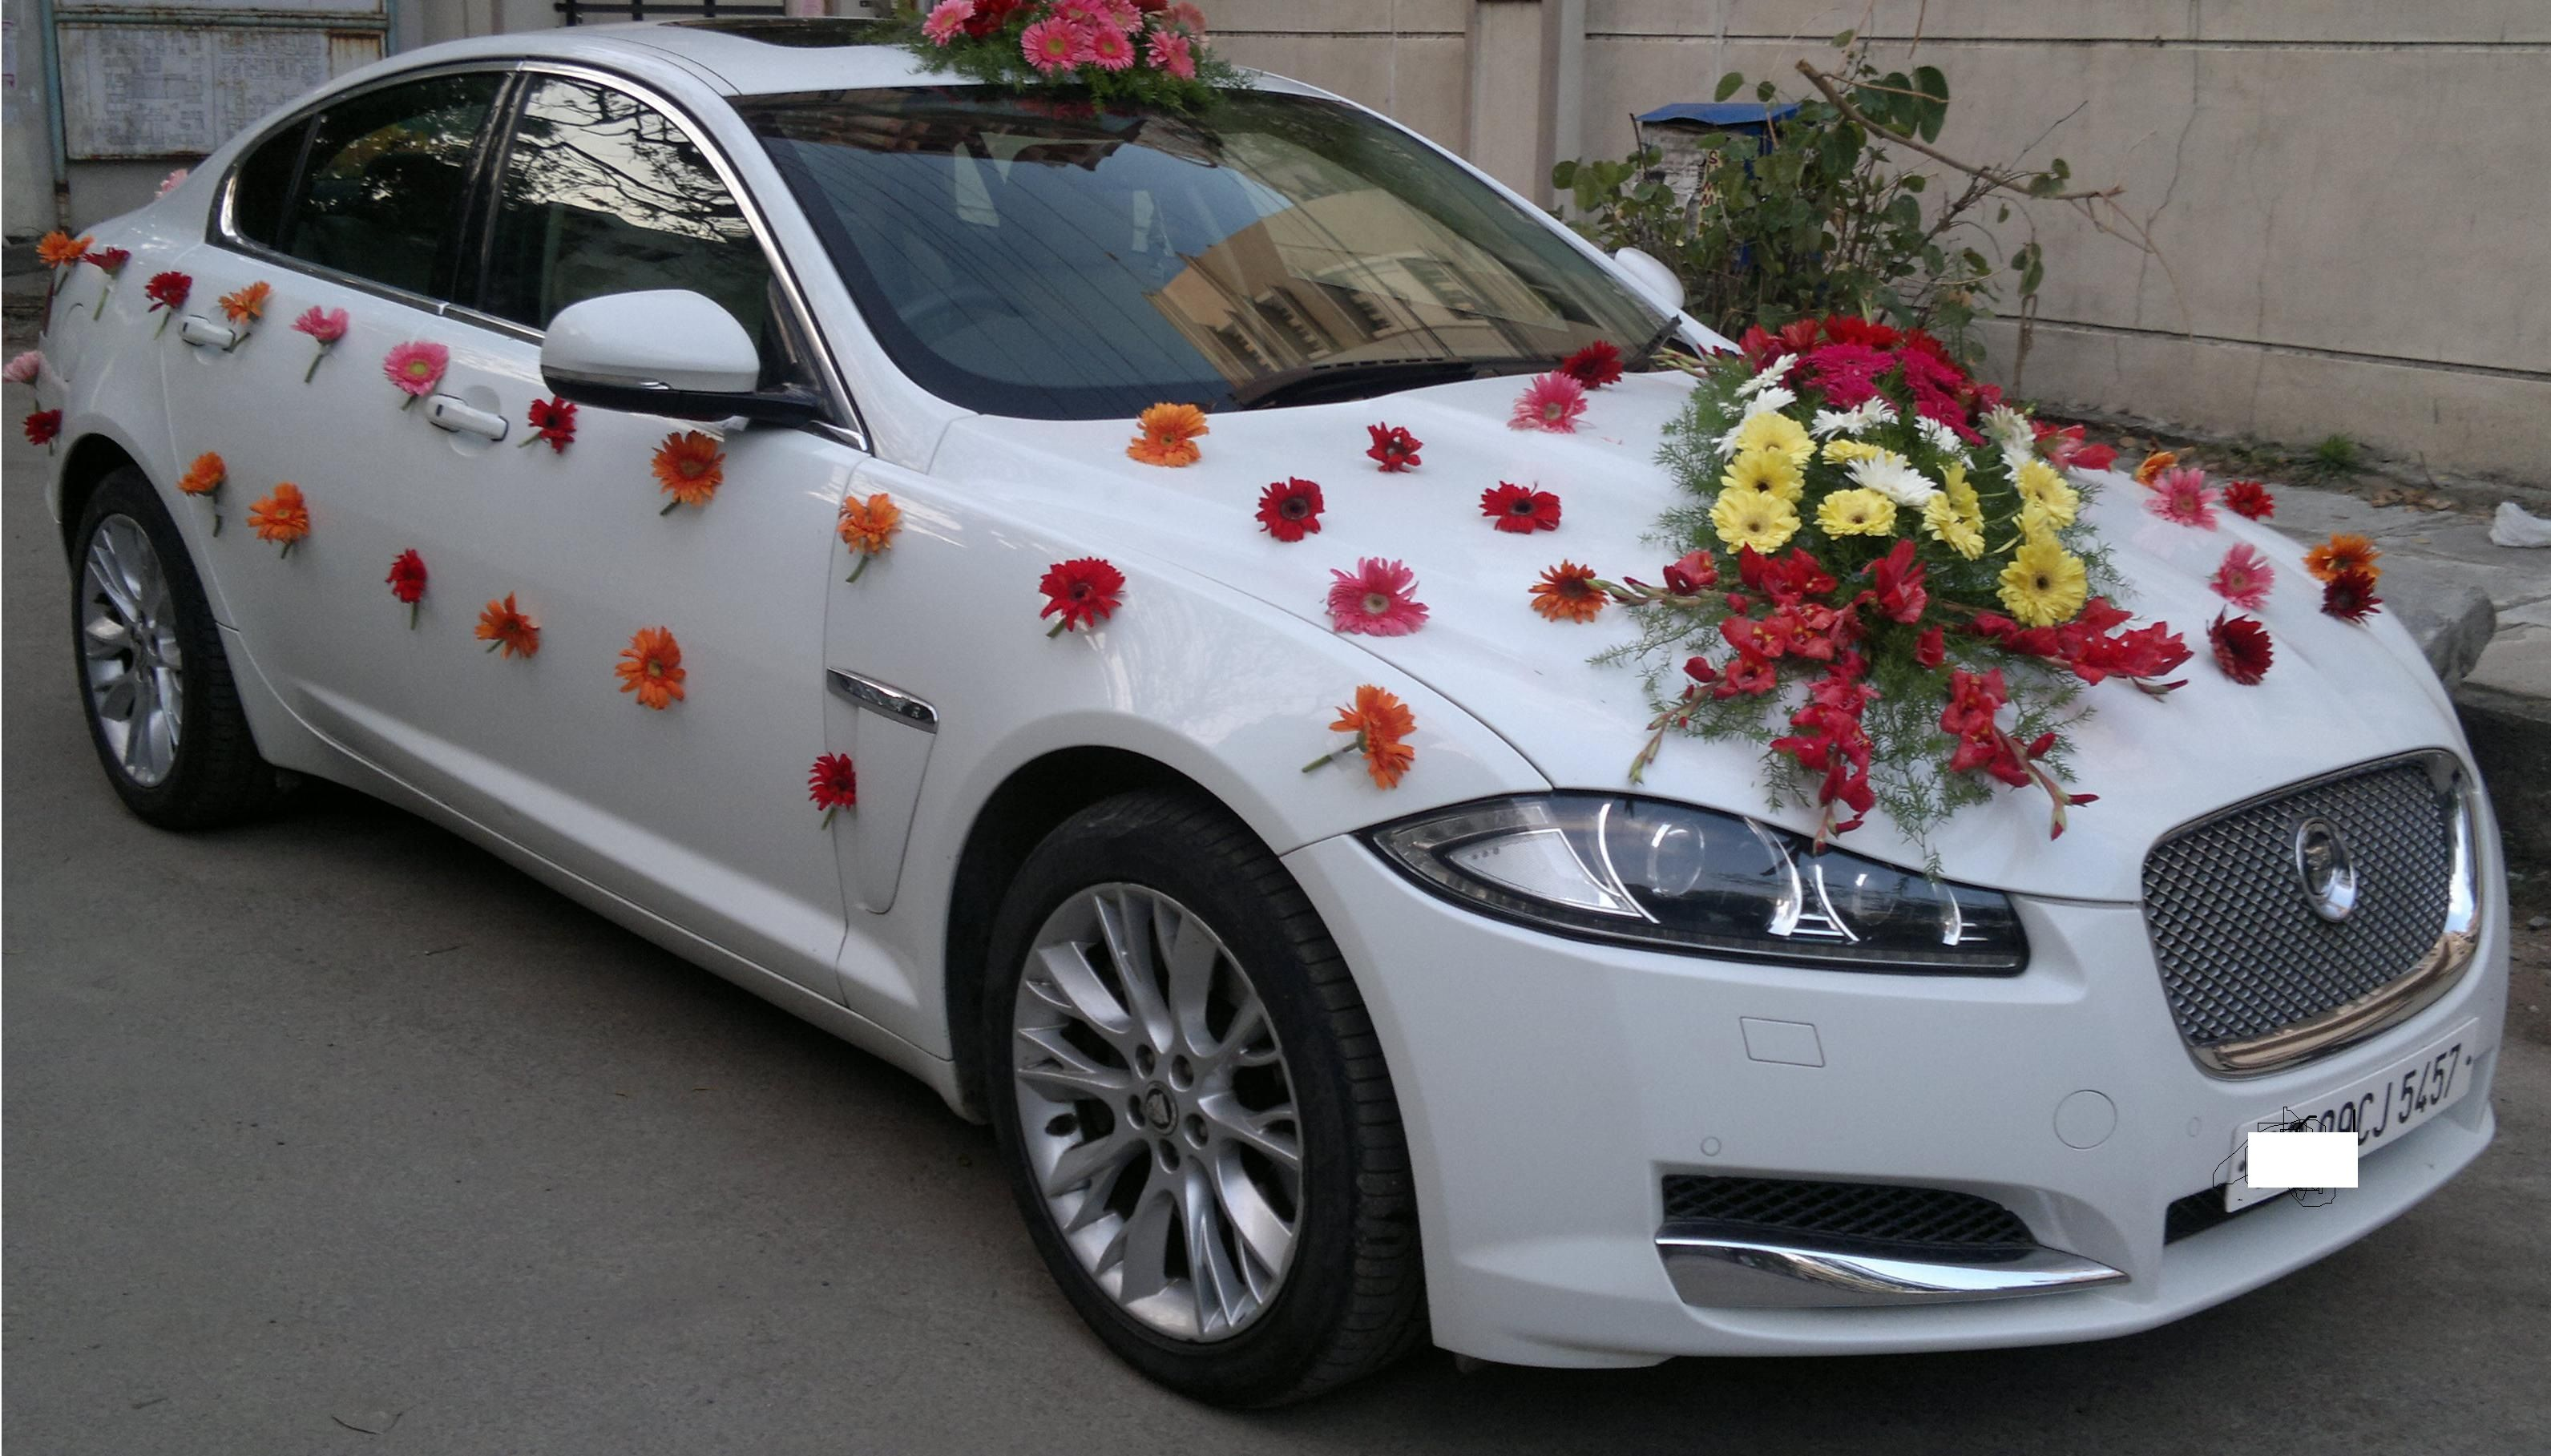 Inspiration Car Decoration For Wedding With Pressed Flowers On